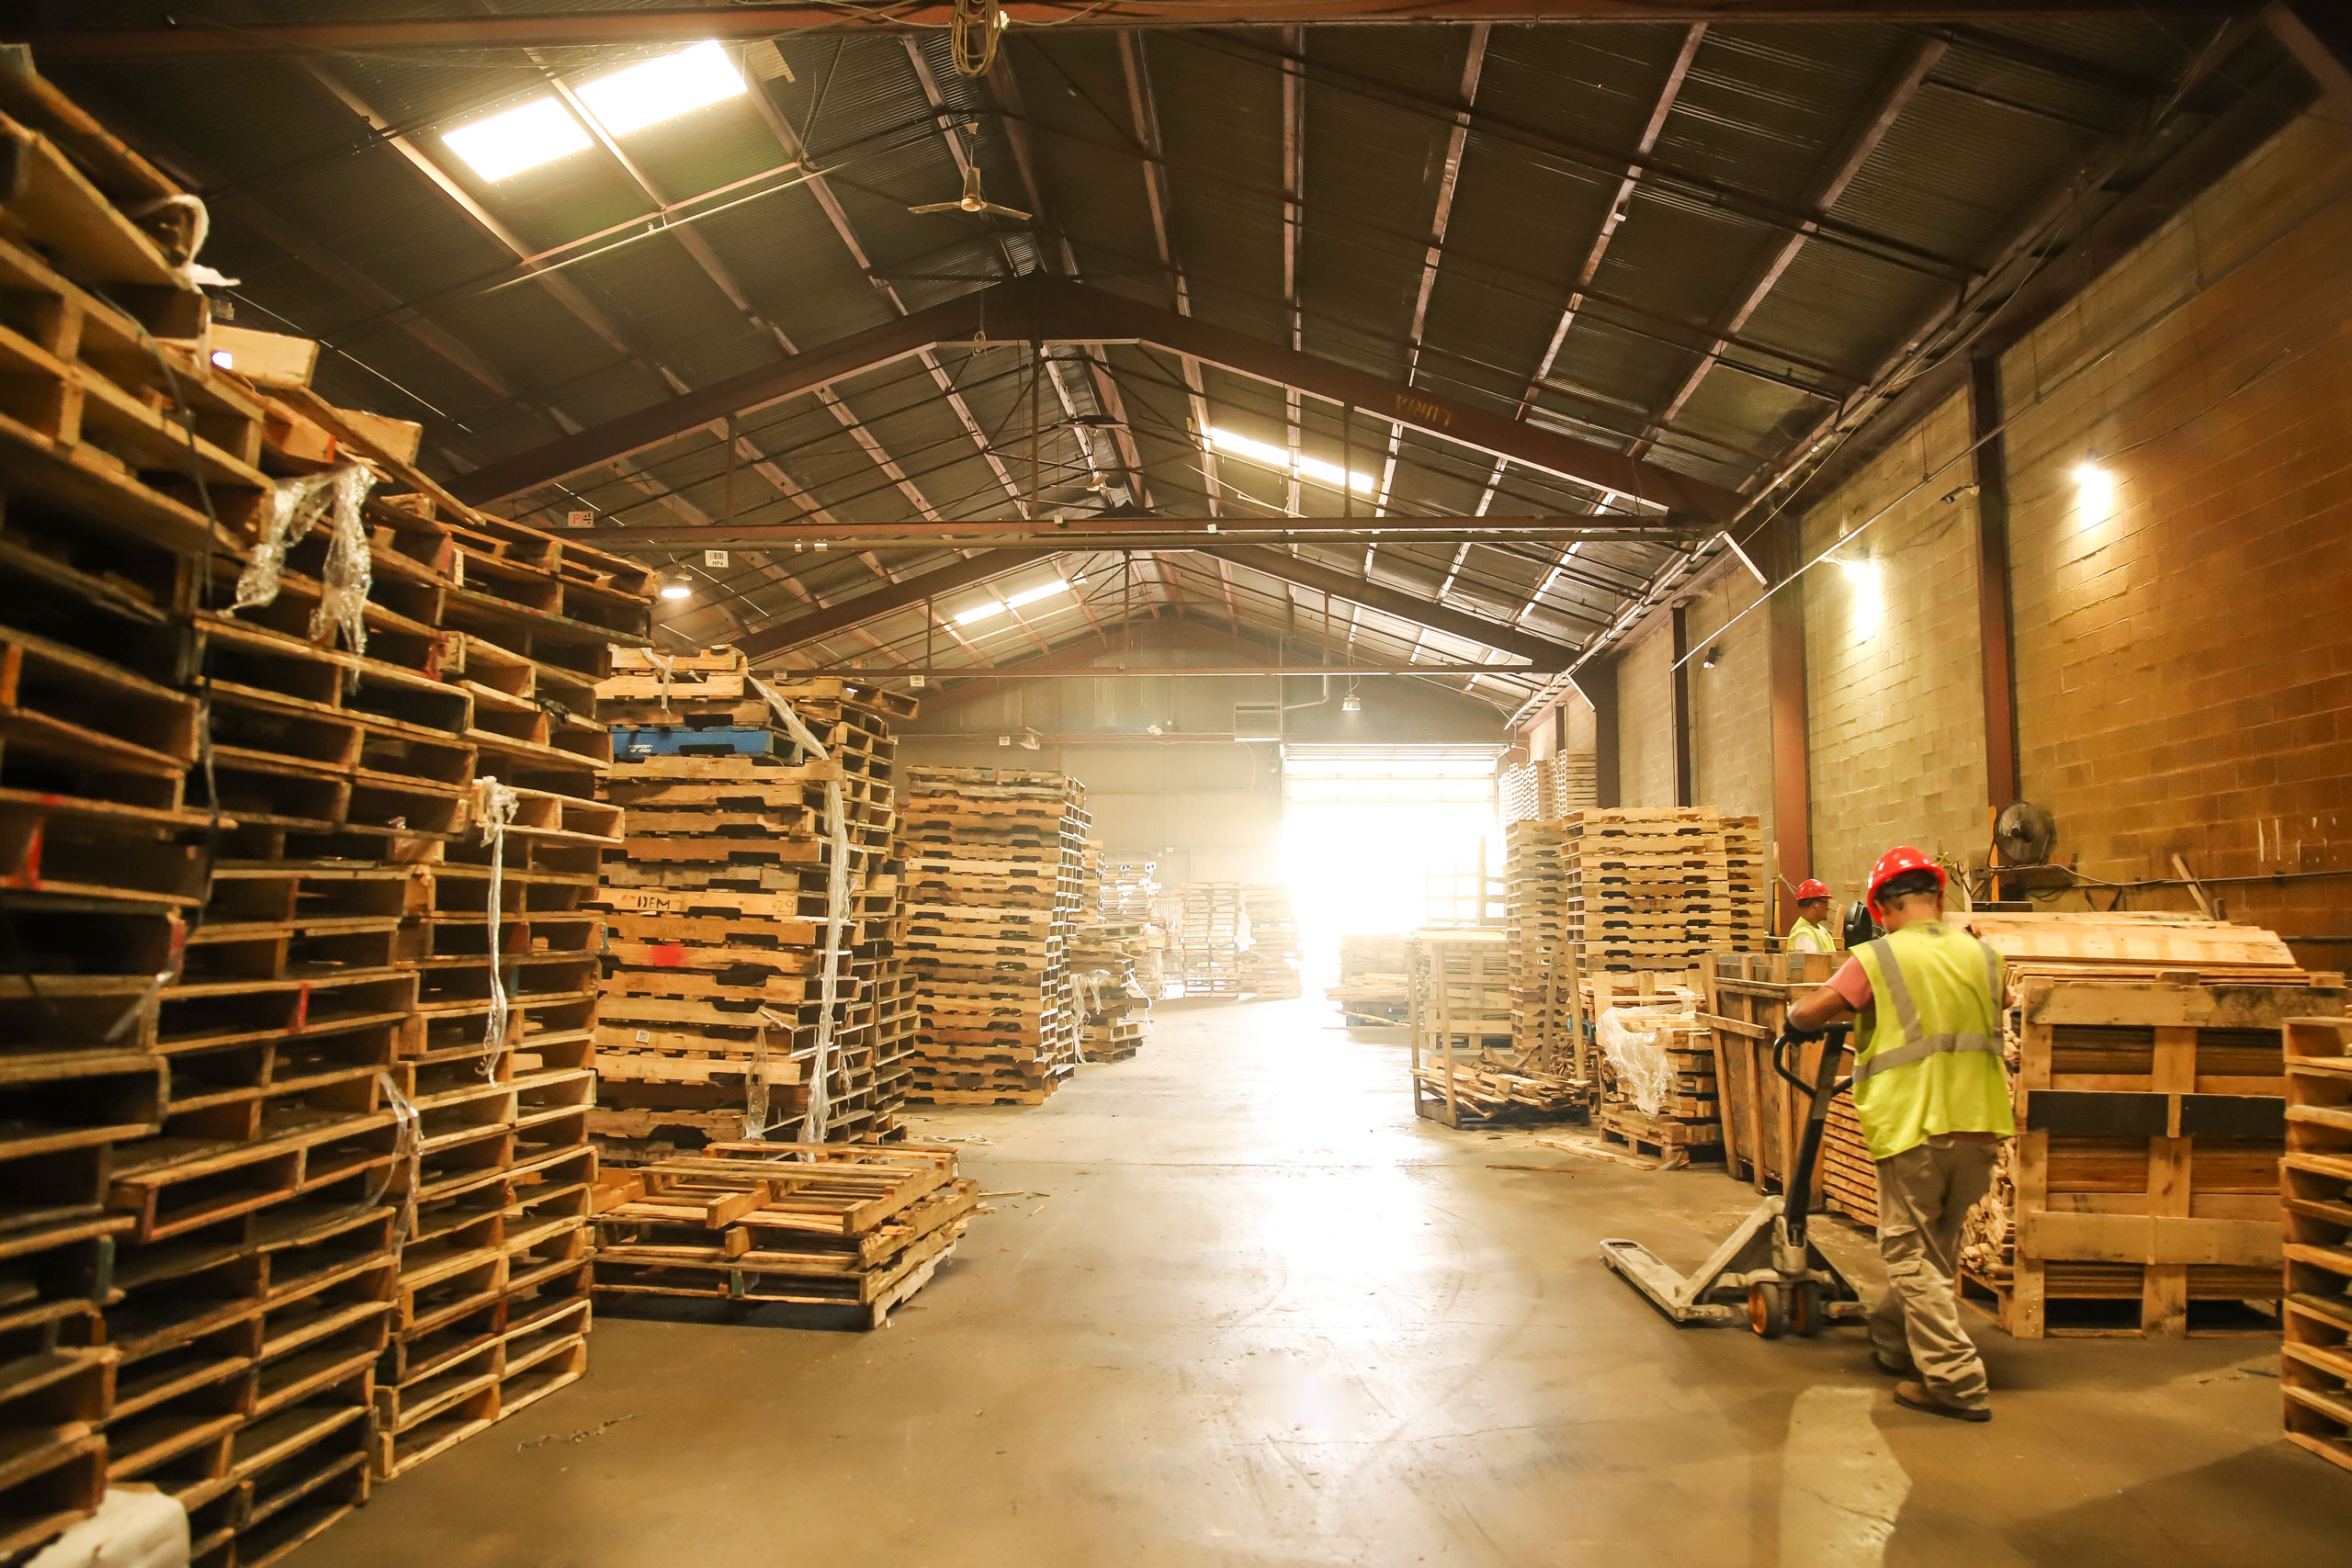 Common Warehouse Safety Hazards and How to Avoid Them